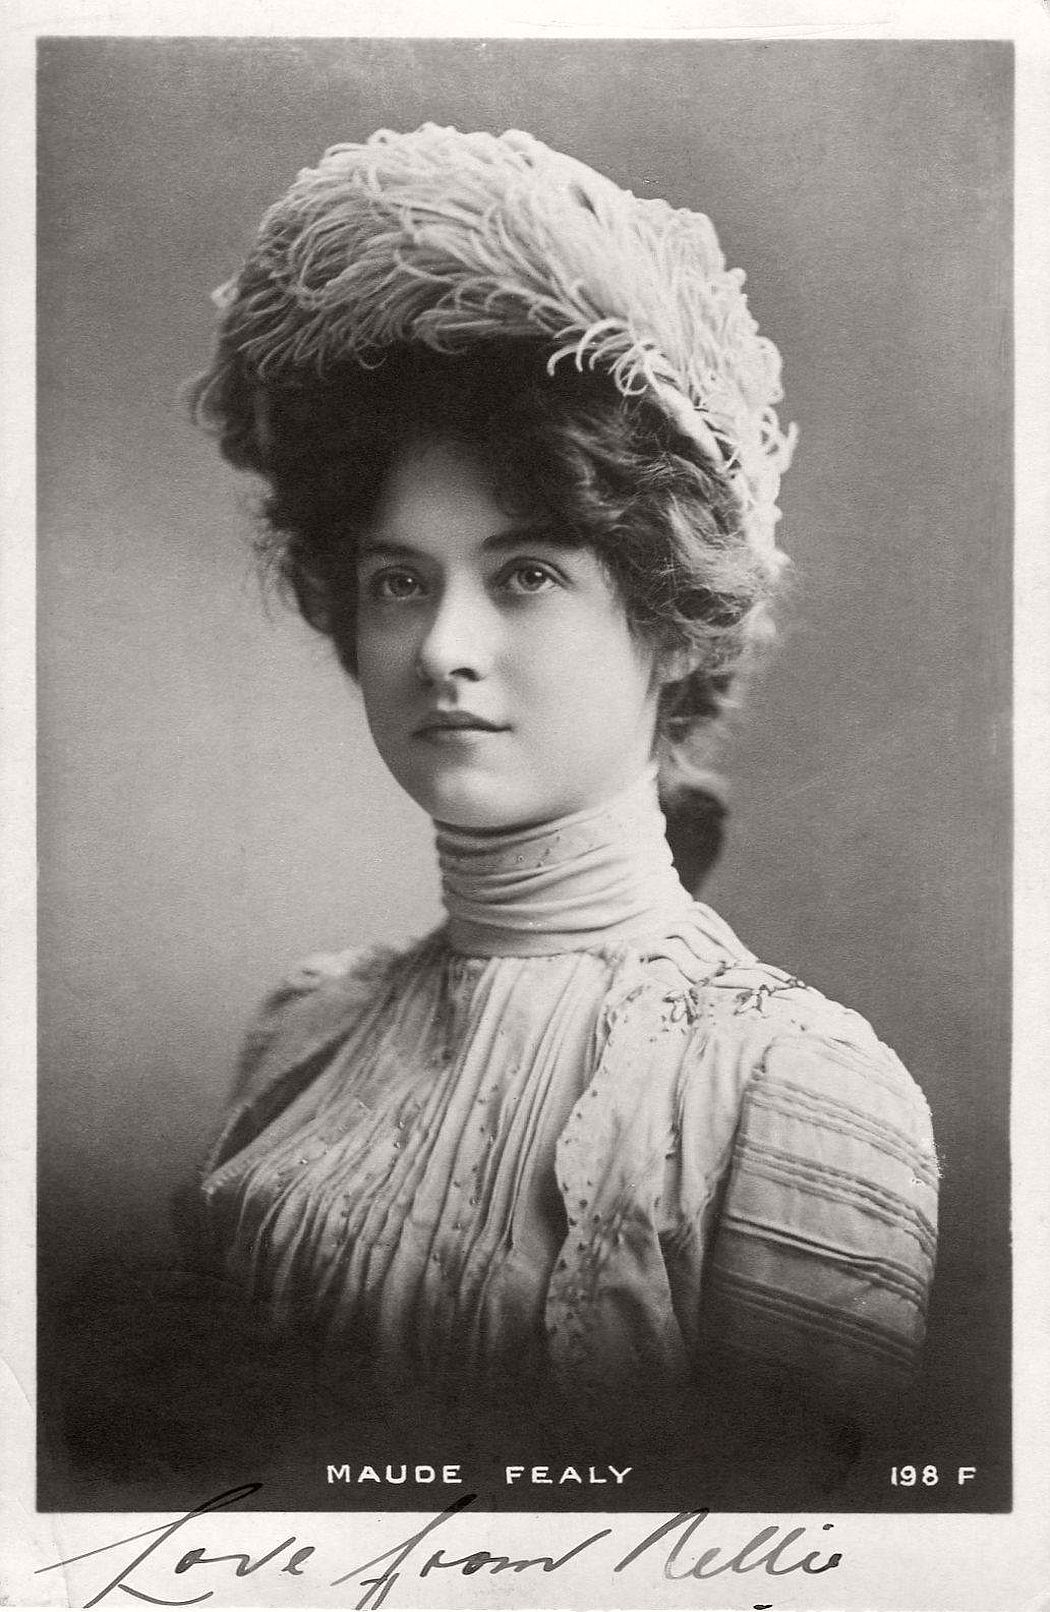 vintage-postcard-of-actress-miss-maude-fealy-1900s-early-xx-century-31